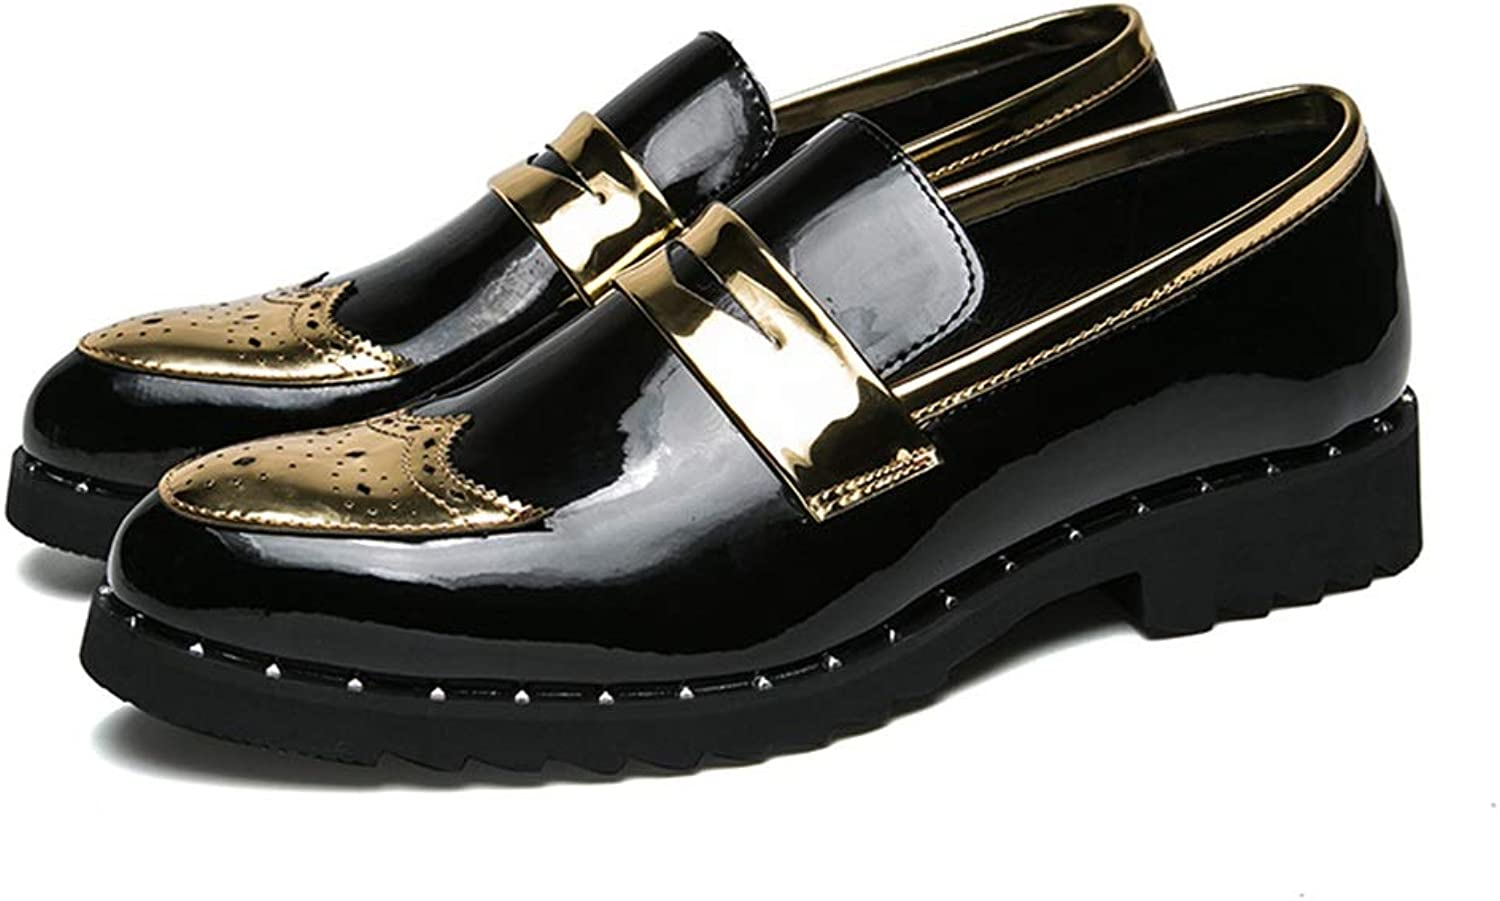 Men's Oxford Casual Personality Patchwork Slip On Patent-Leather Brogue shoes Cricket shoes